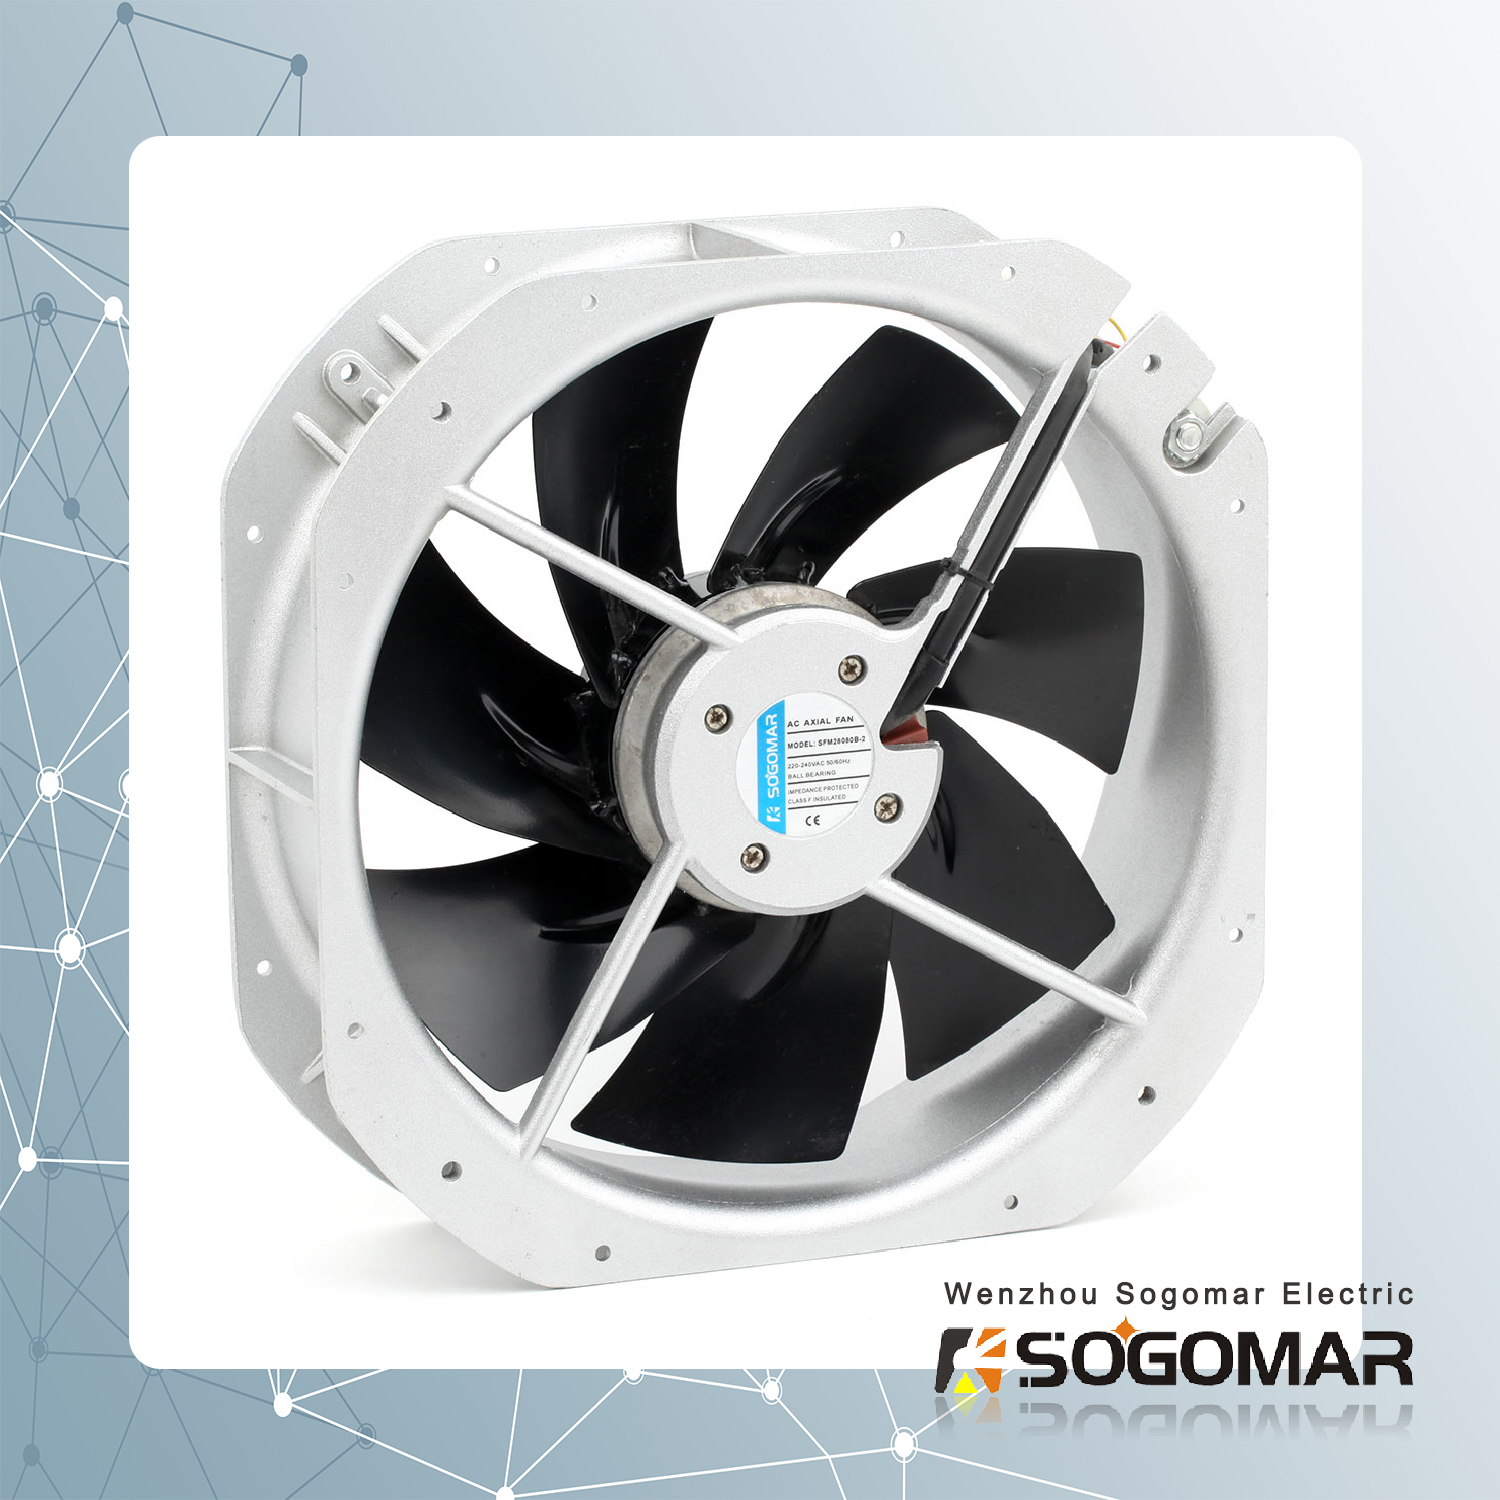 280x280x80mm axial fan with metal blades